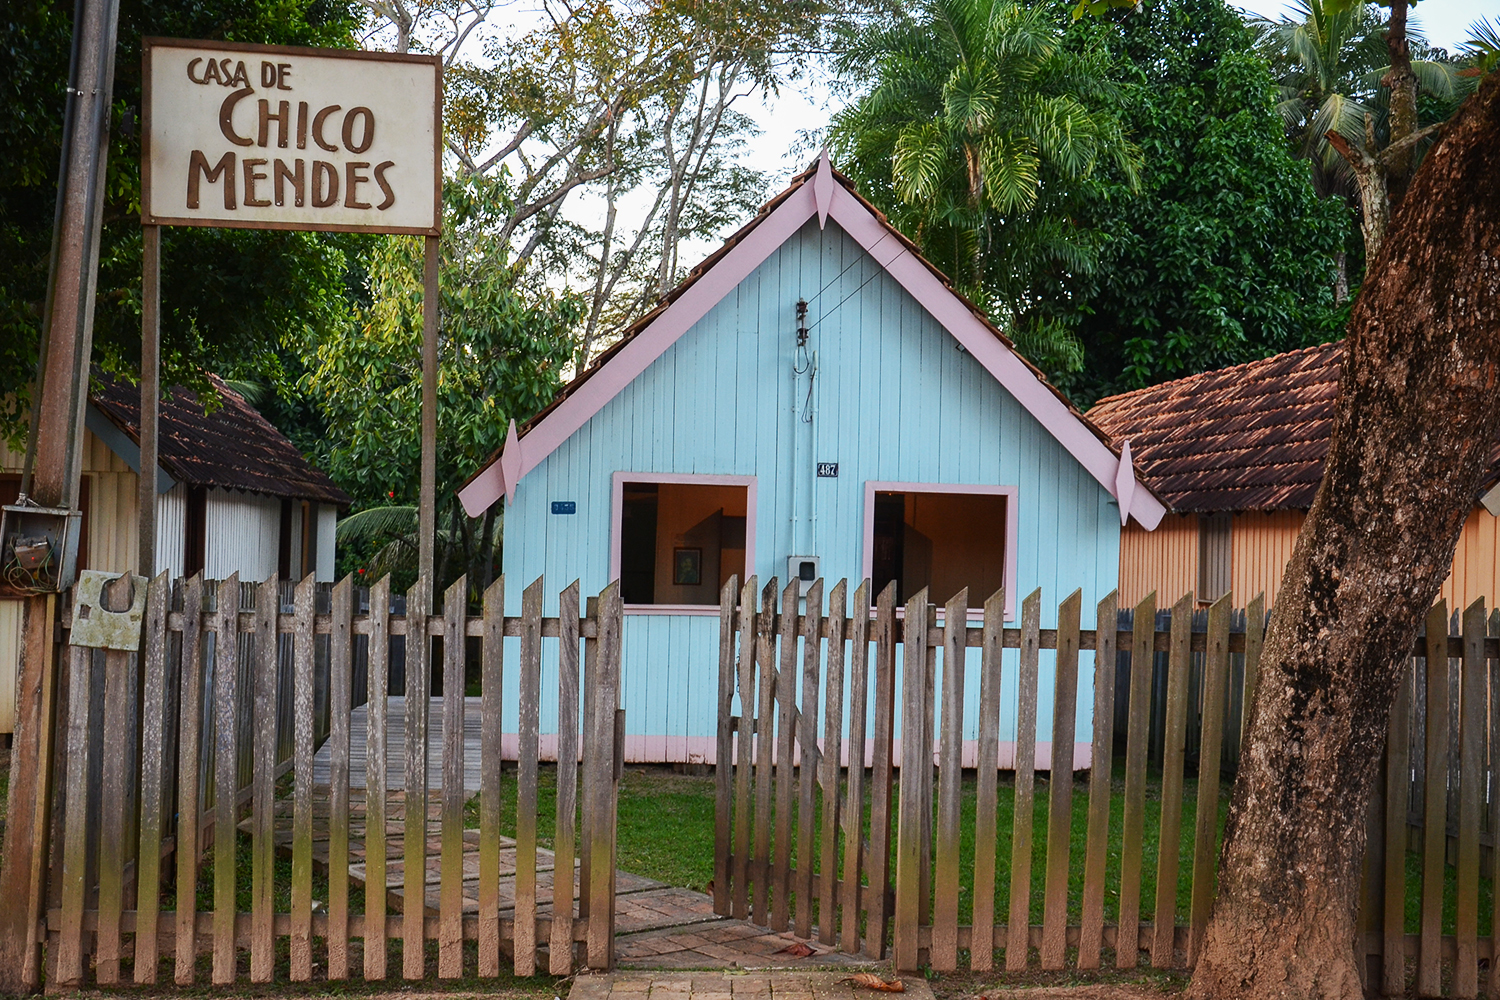 Casa onde Chico Mendes foi assassinado, em Xapuri, no Acre